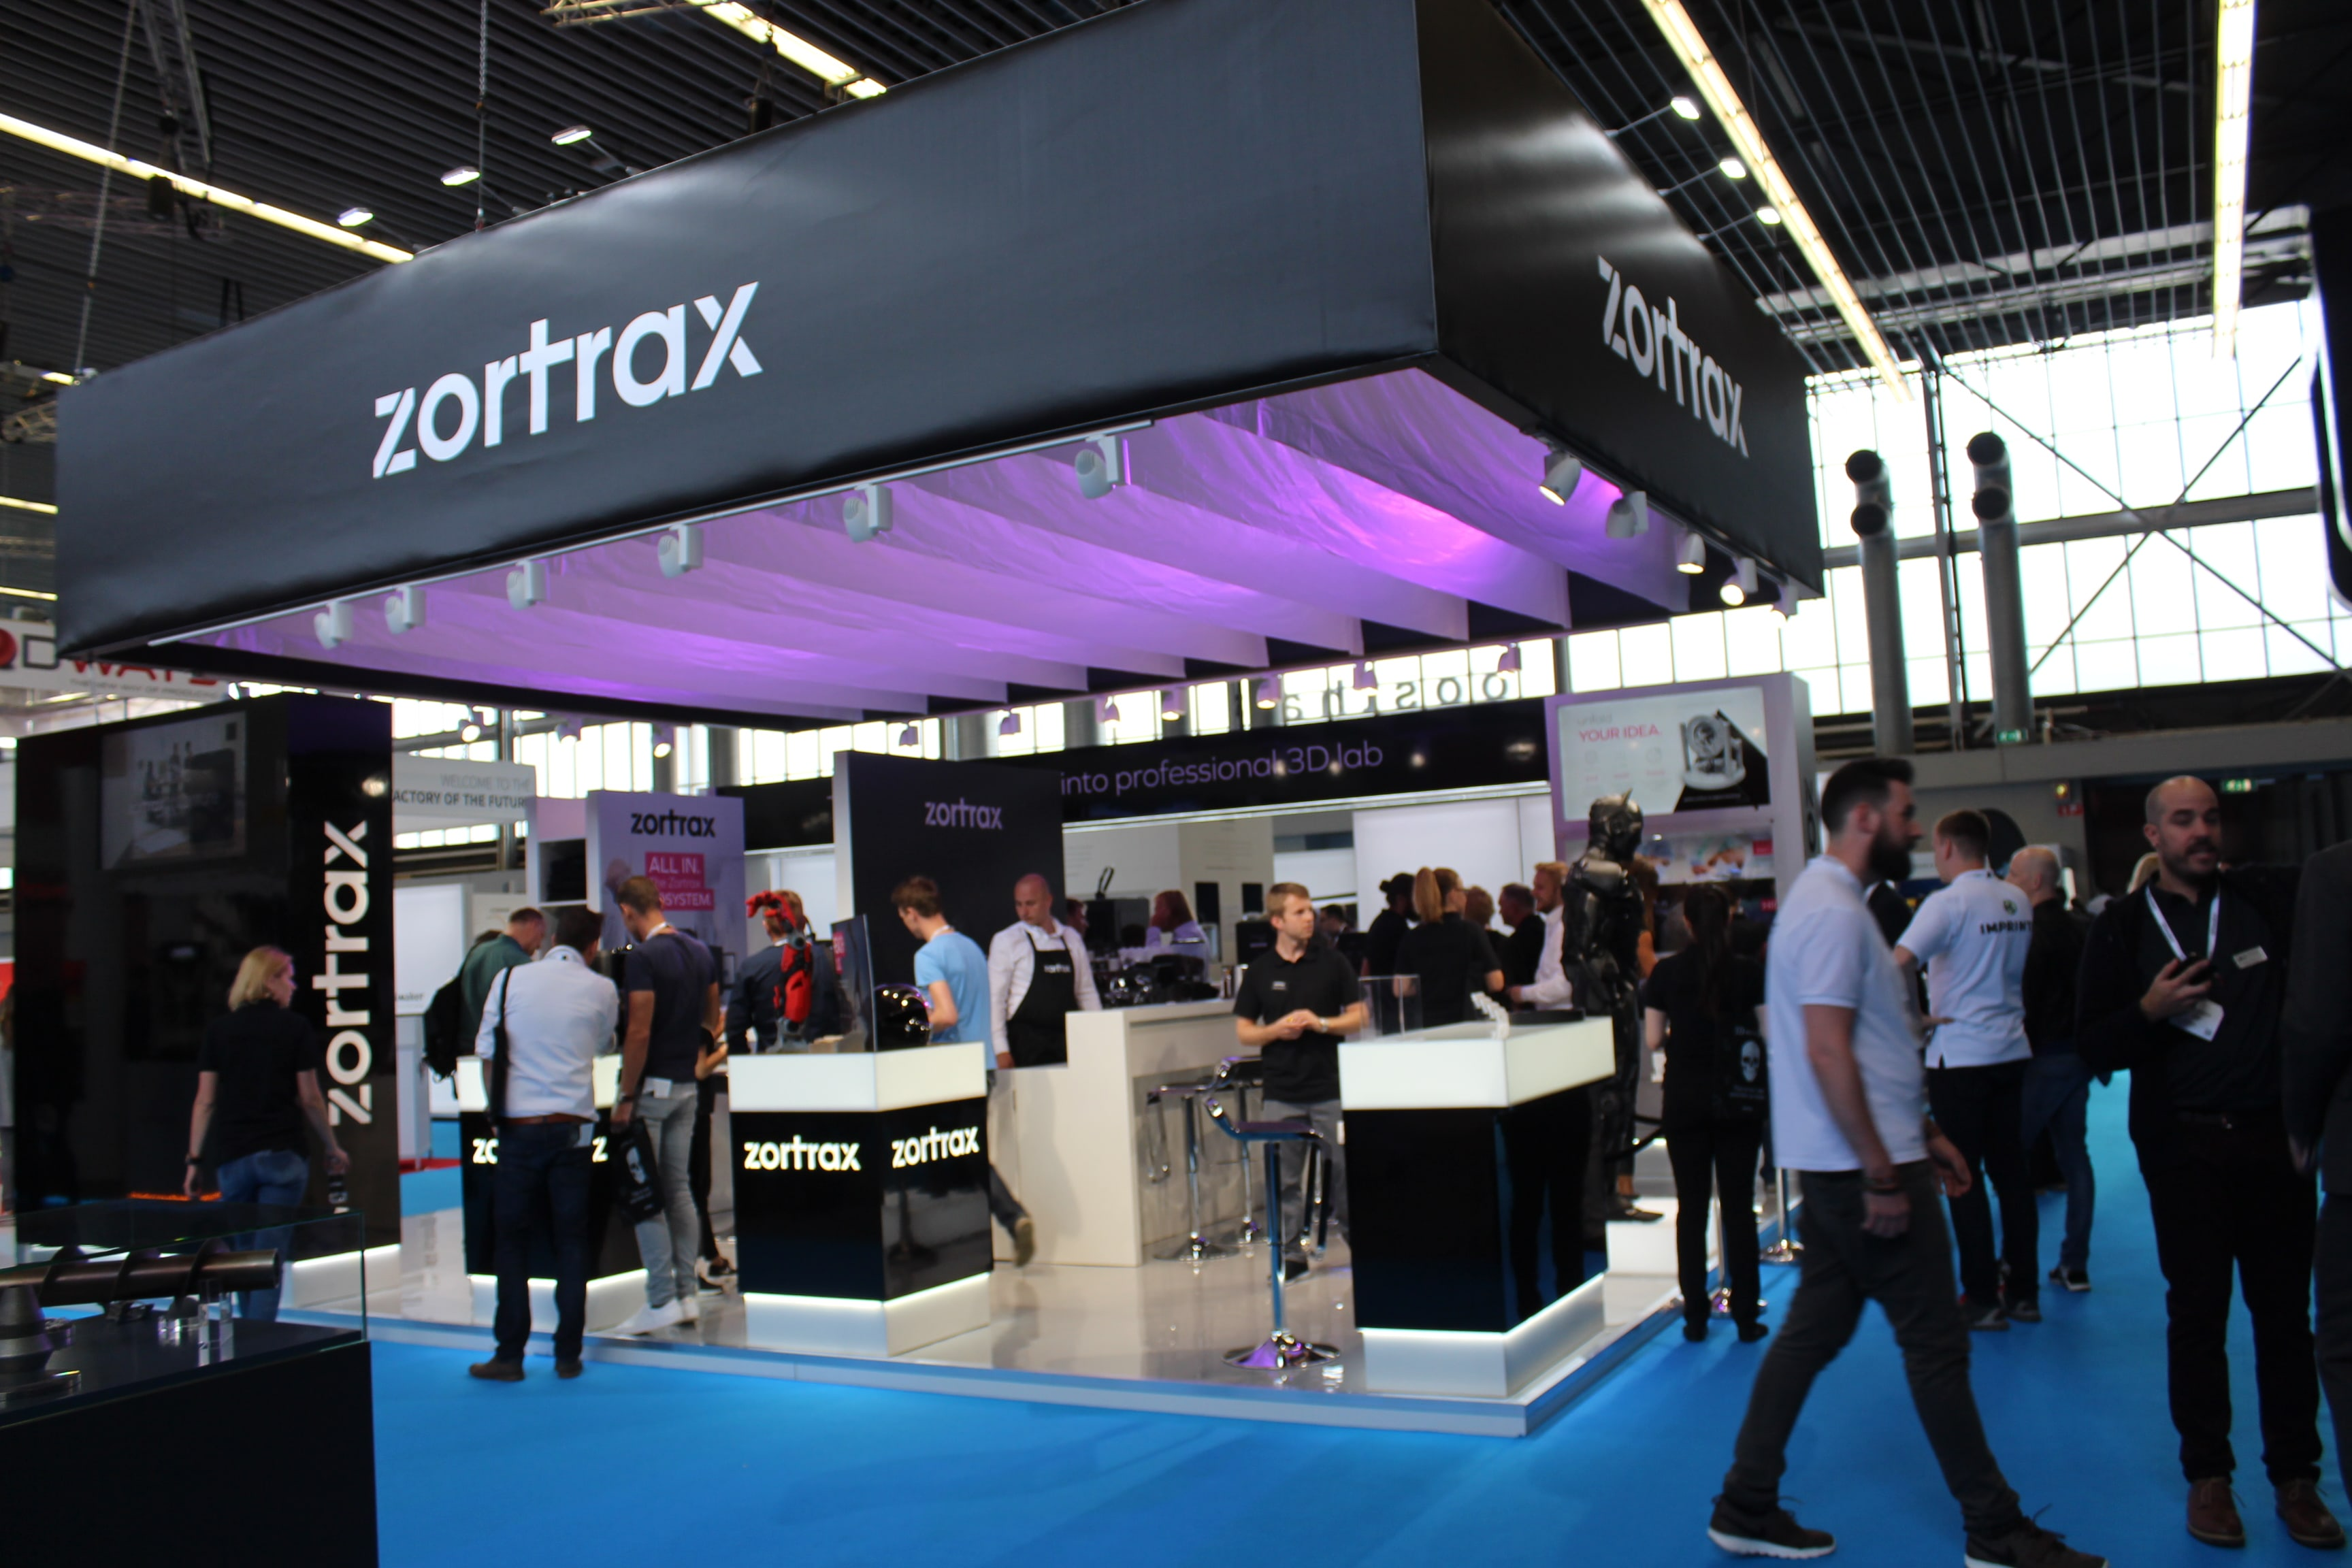 Zortrax's booth at an event